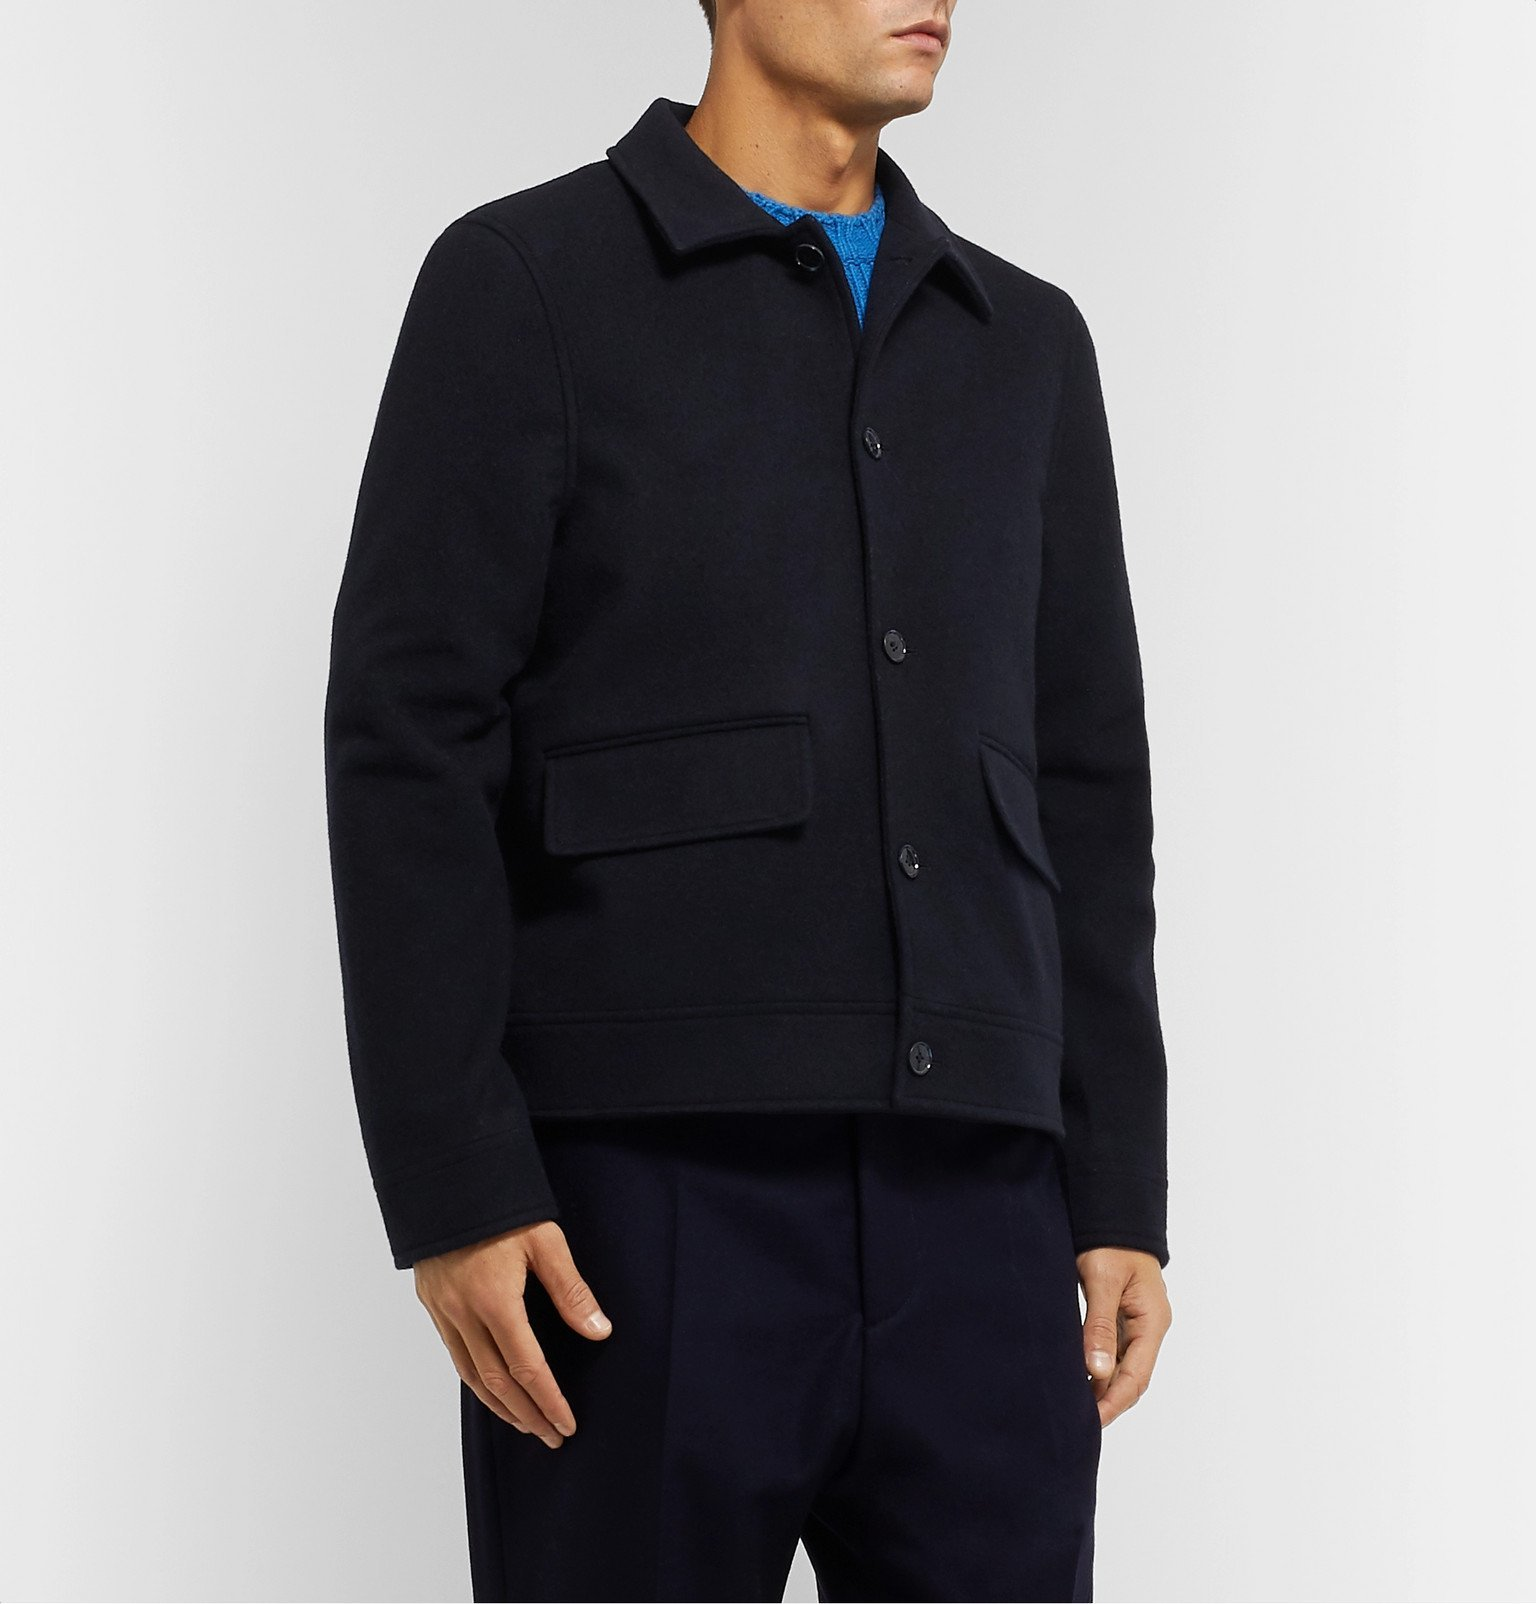 Officine Generale - Karl Wool and Cashmere-Blend Harrington Jacket - Blue